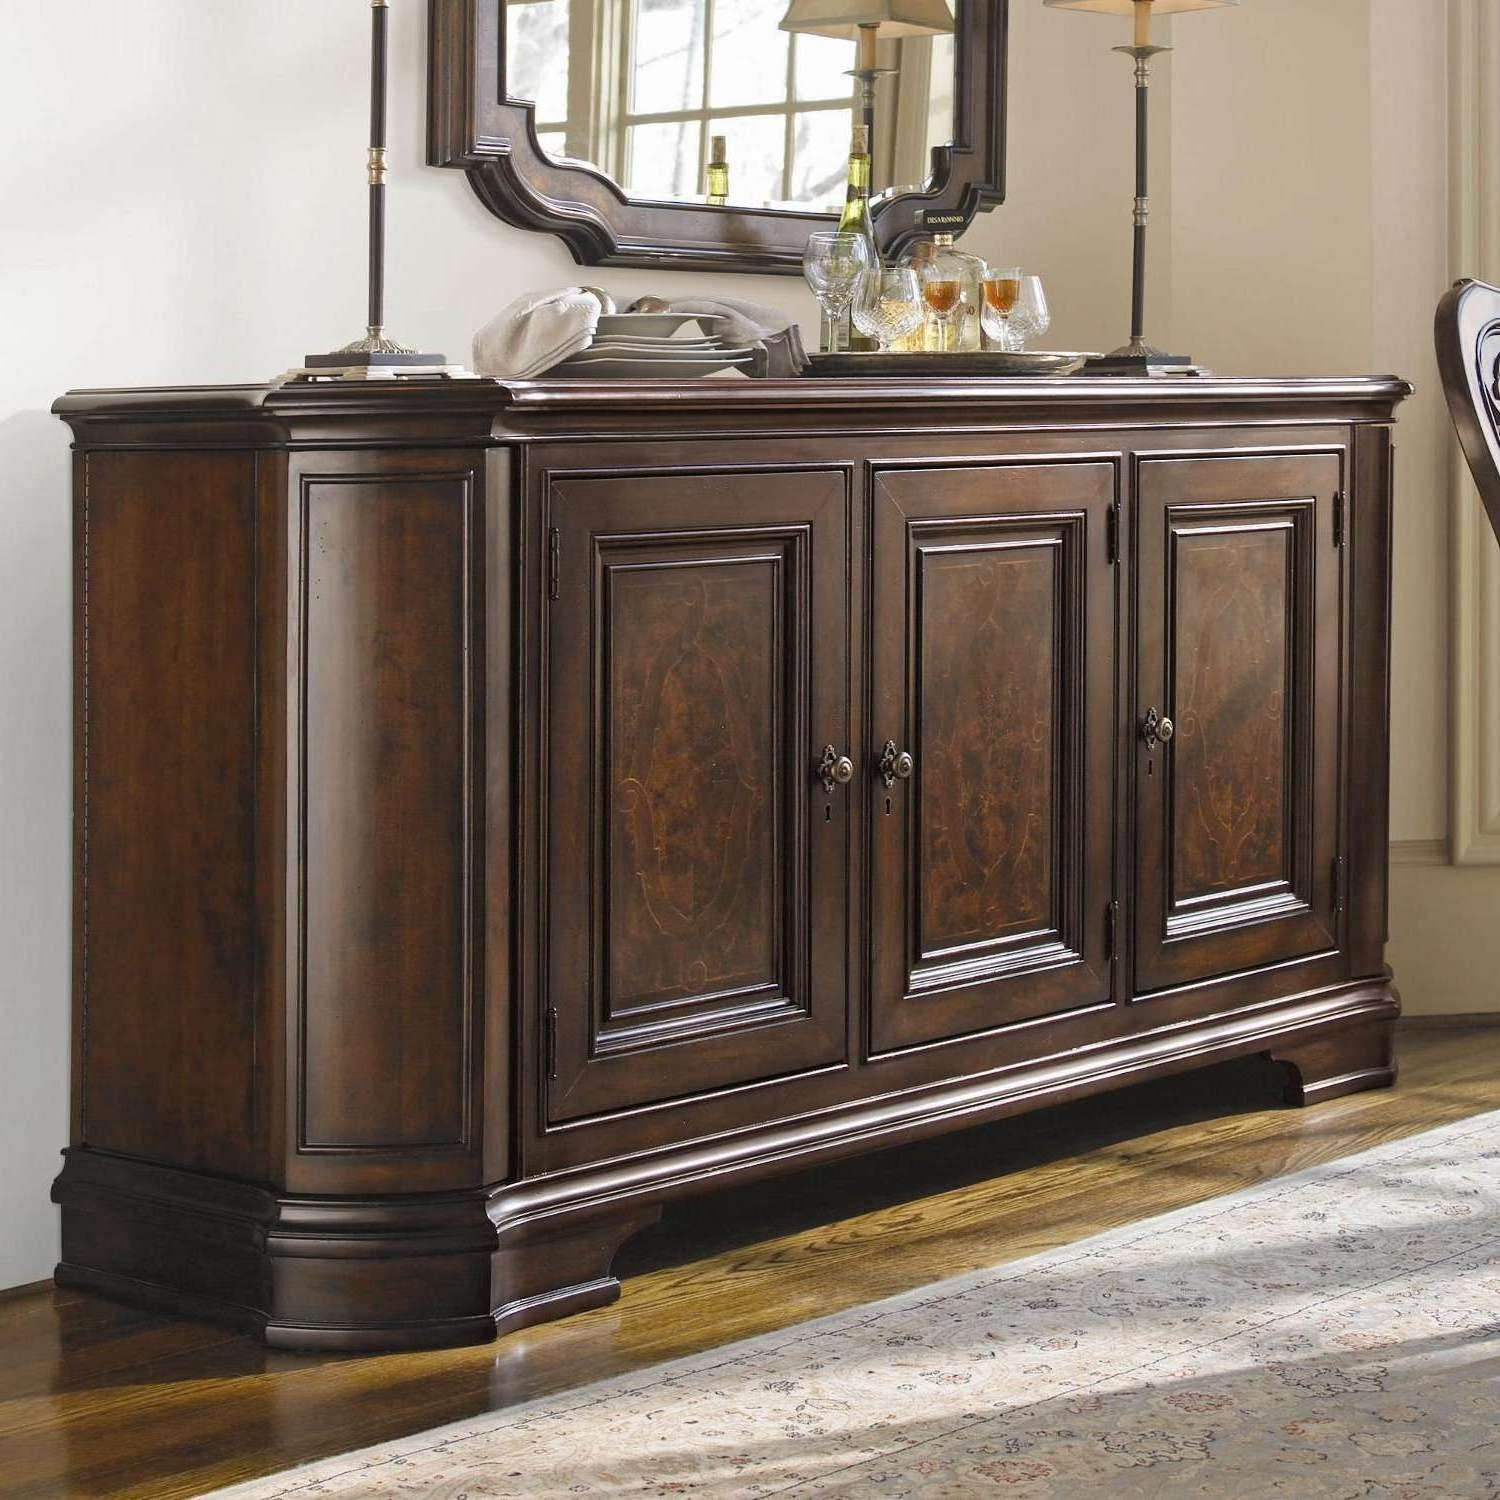 20 Inspirations Of Dining Room Servers And Sideboards Regarding Dining Room Buffets Sideboards (View 2 of 20)